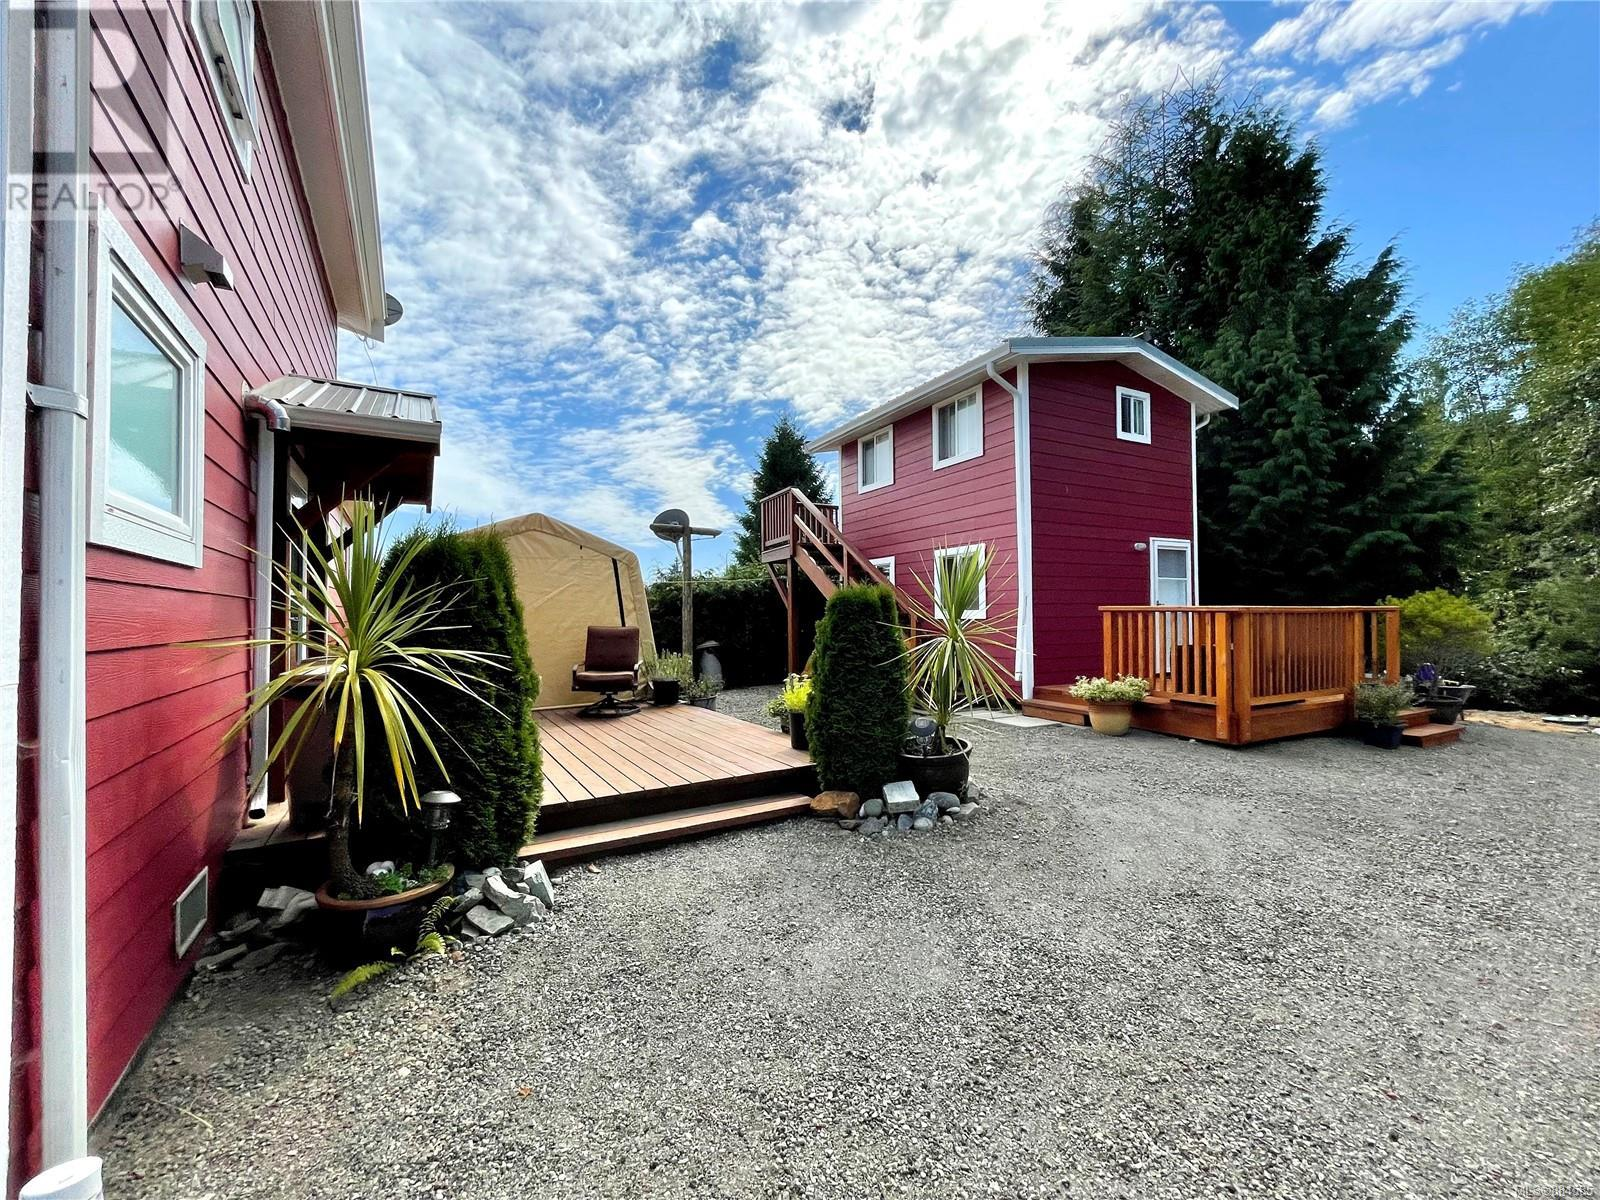 MLS® #884585 - Ucluelet House For sale Image #20